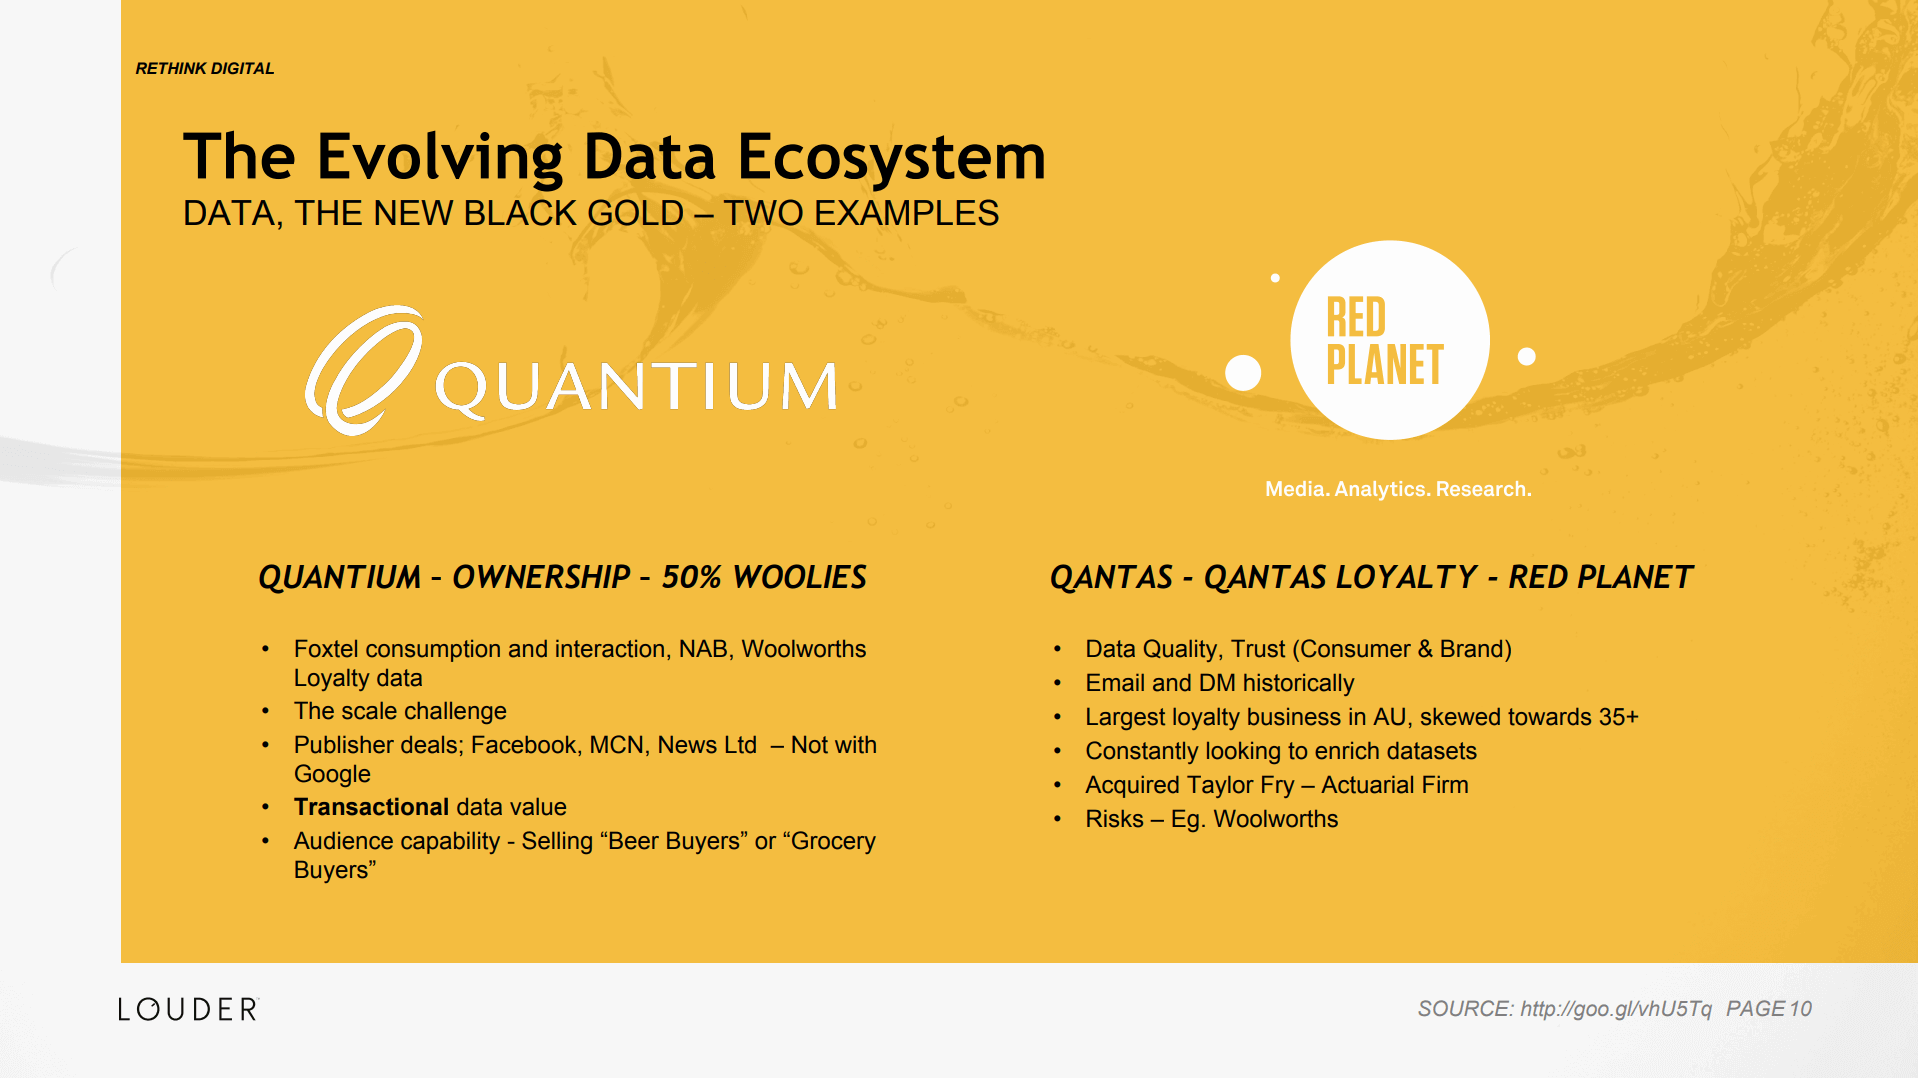 The Evolving Data Ecosystem